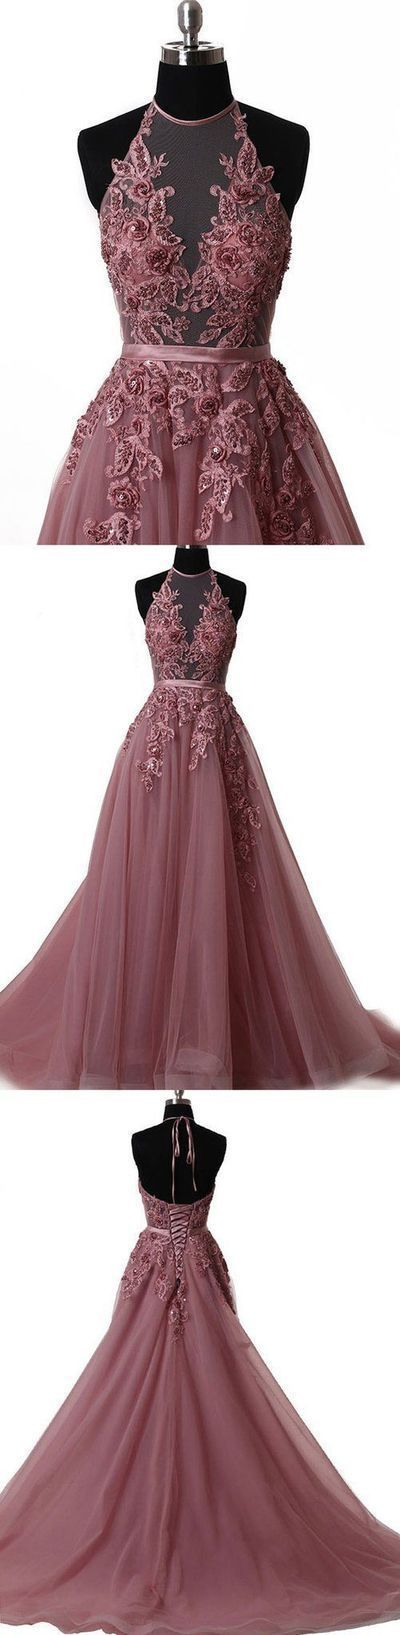 Latest Tulle and Lace Halter Long Prom Dresses Evening Party Dresses